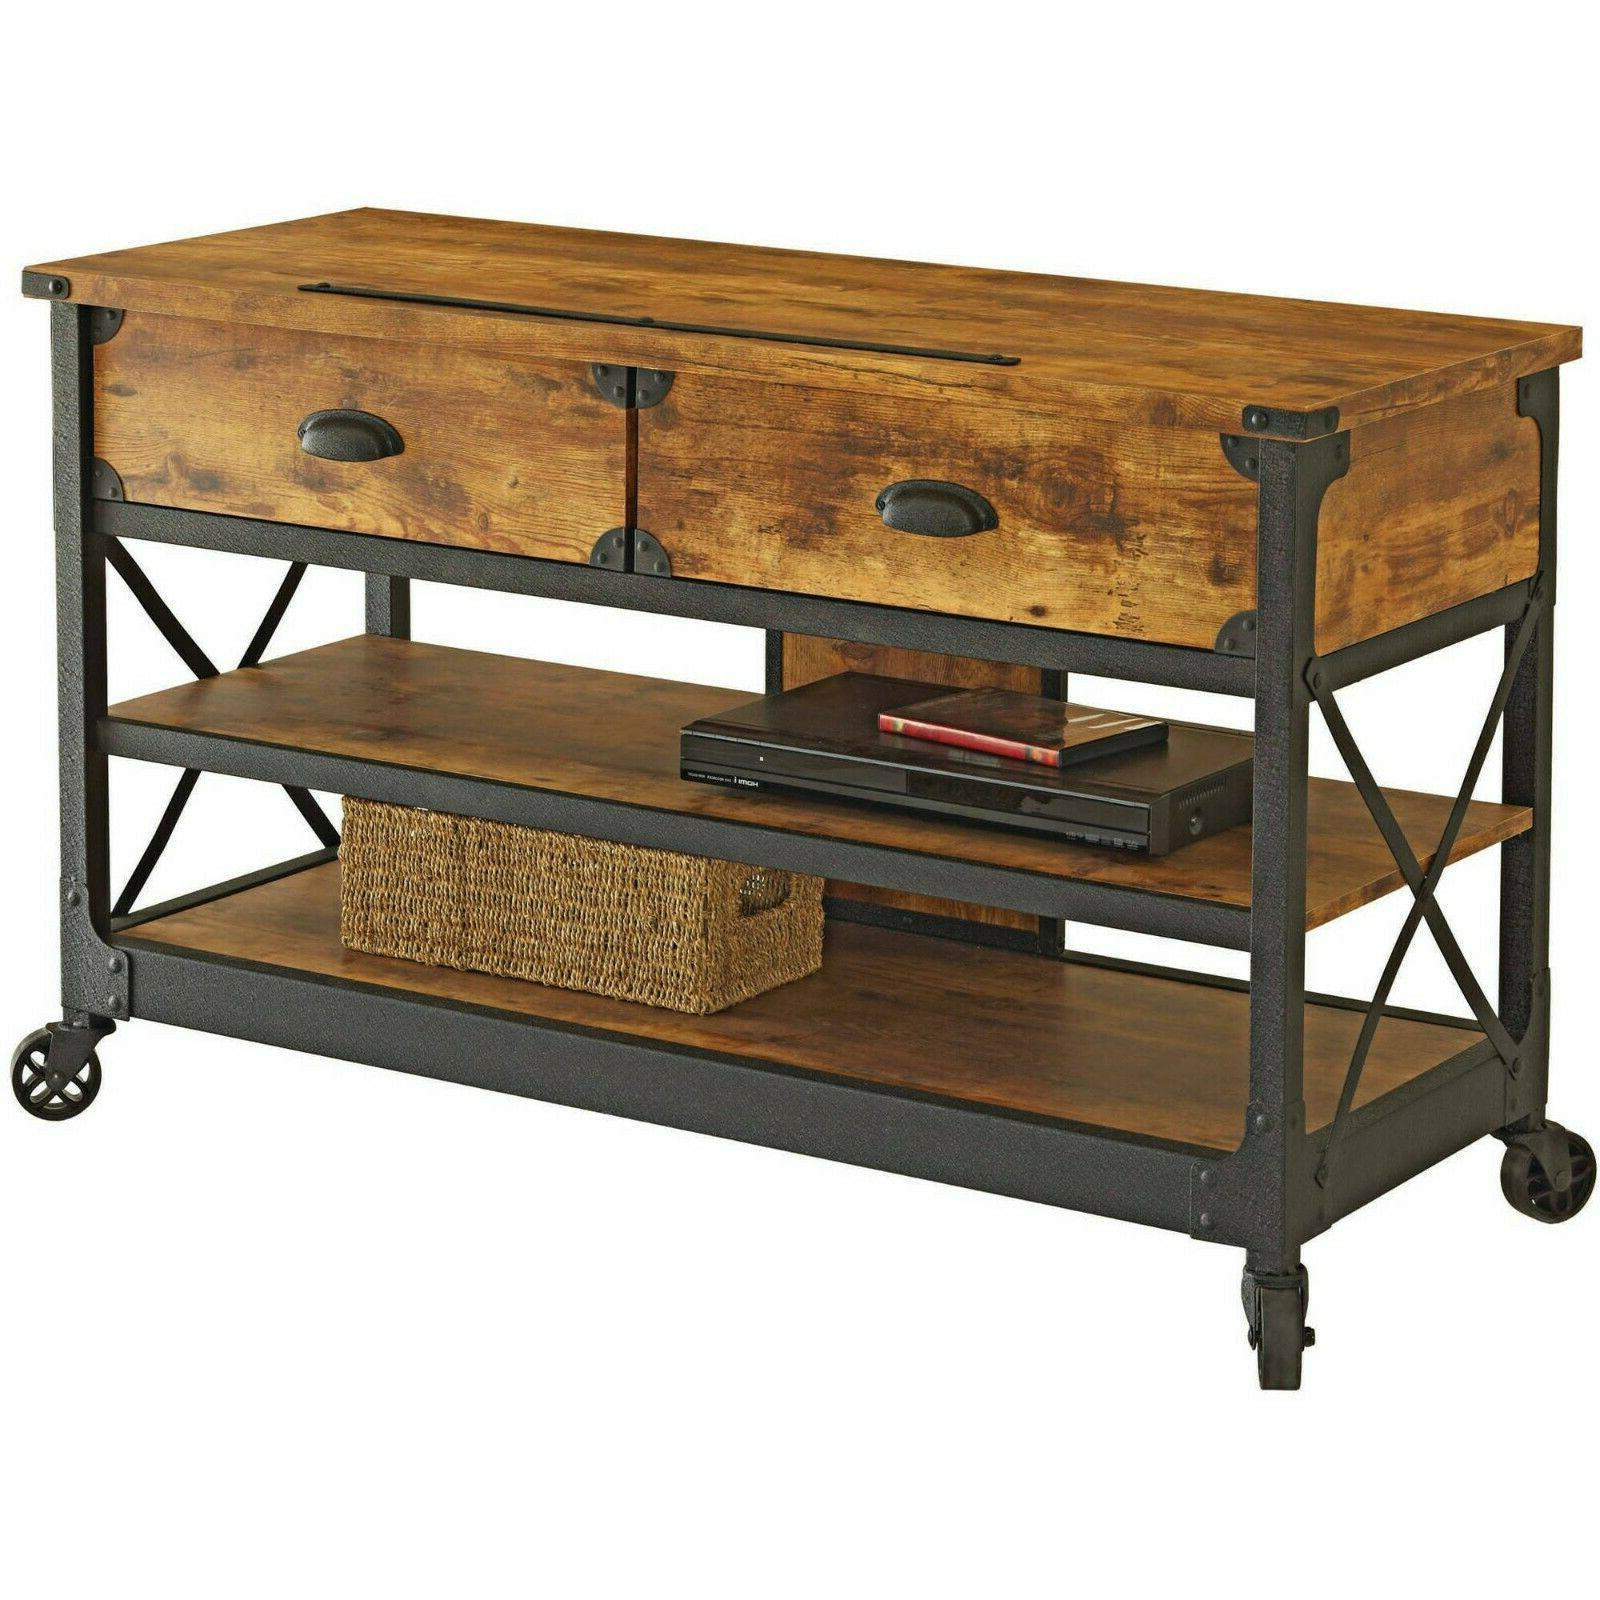 TV Stand Media Console Wood Rustic Table 2 Drawer Cabinet We